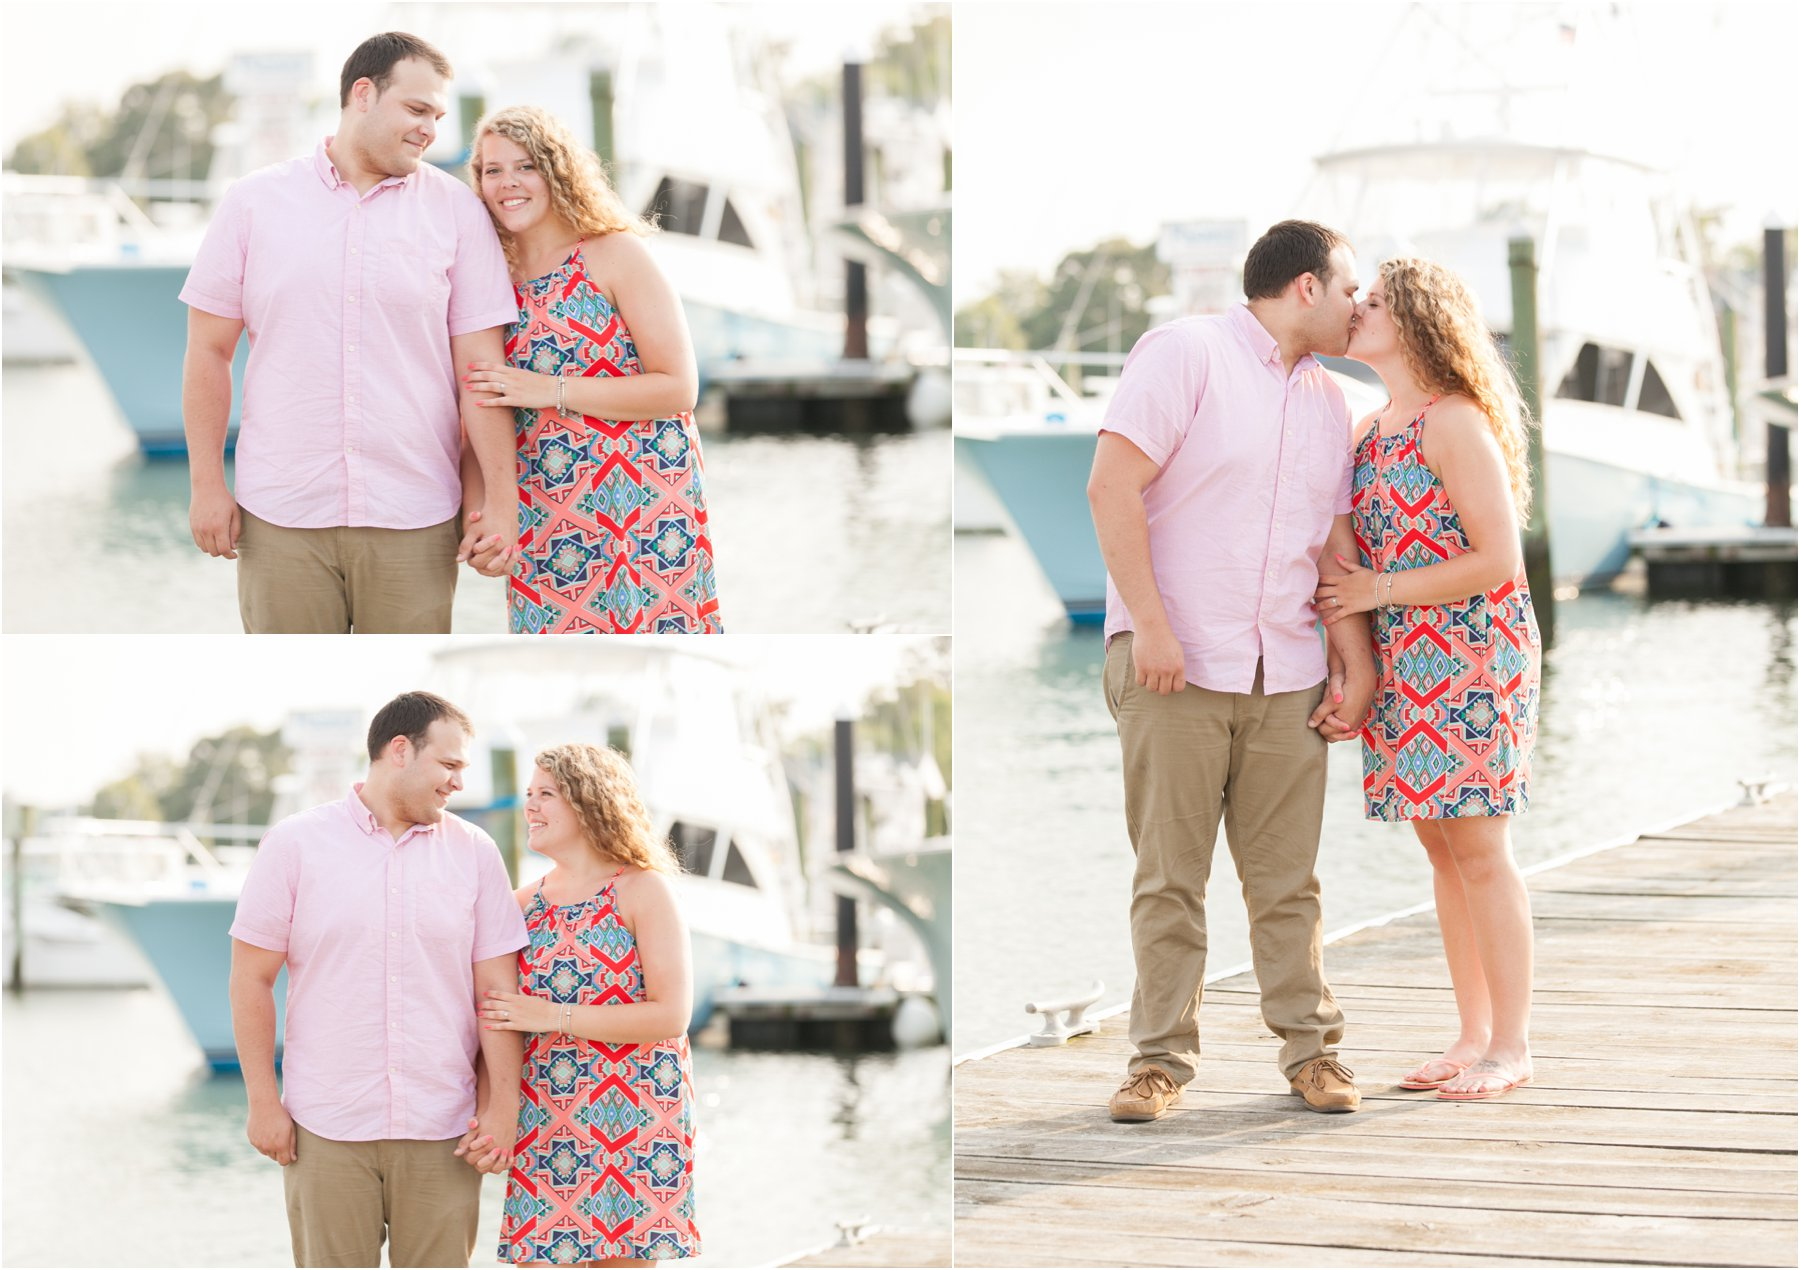 engagement_beach_Photography_Jessica_Ryan_Photography_virginia_virginia_beach_0291